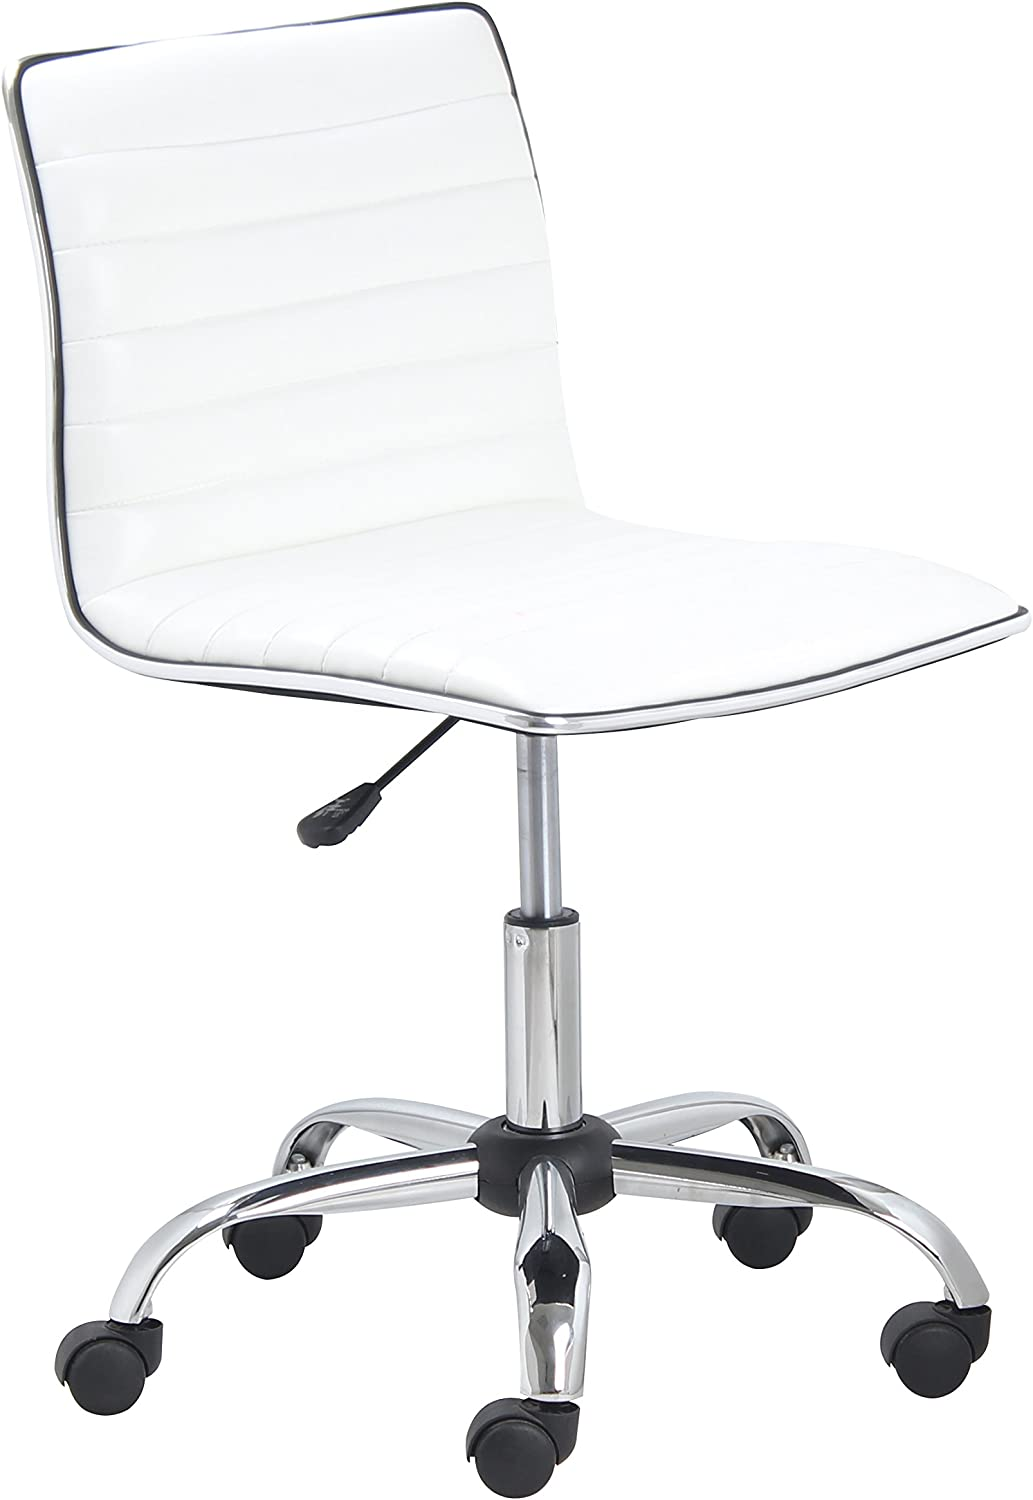 Btexpert Btexpert Swivel Mid Back Armless Ribbed Designer Task Chair Leather Soft Upholstery Office Chair White Home Kitchen Amazon Com